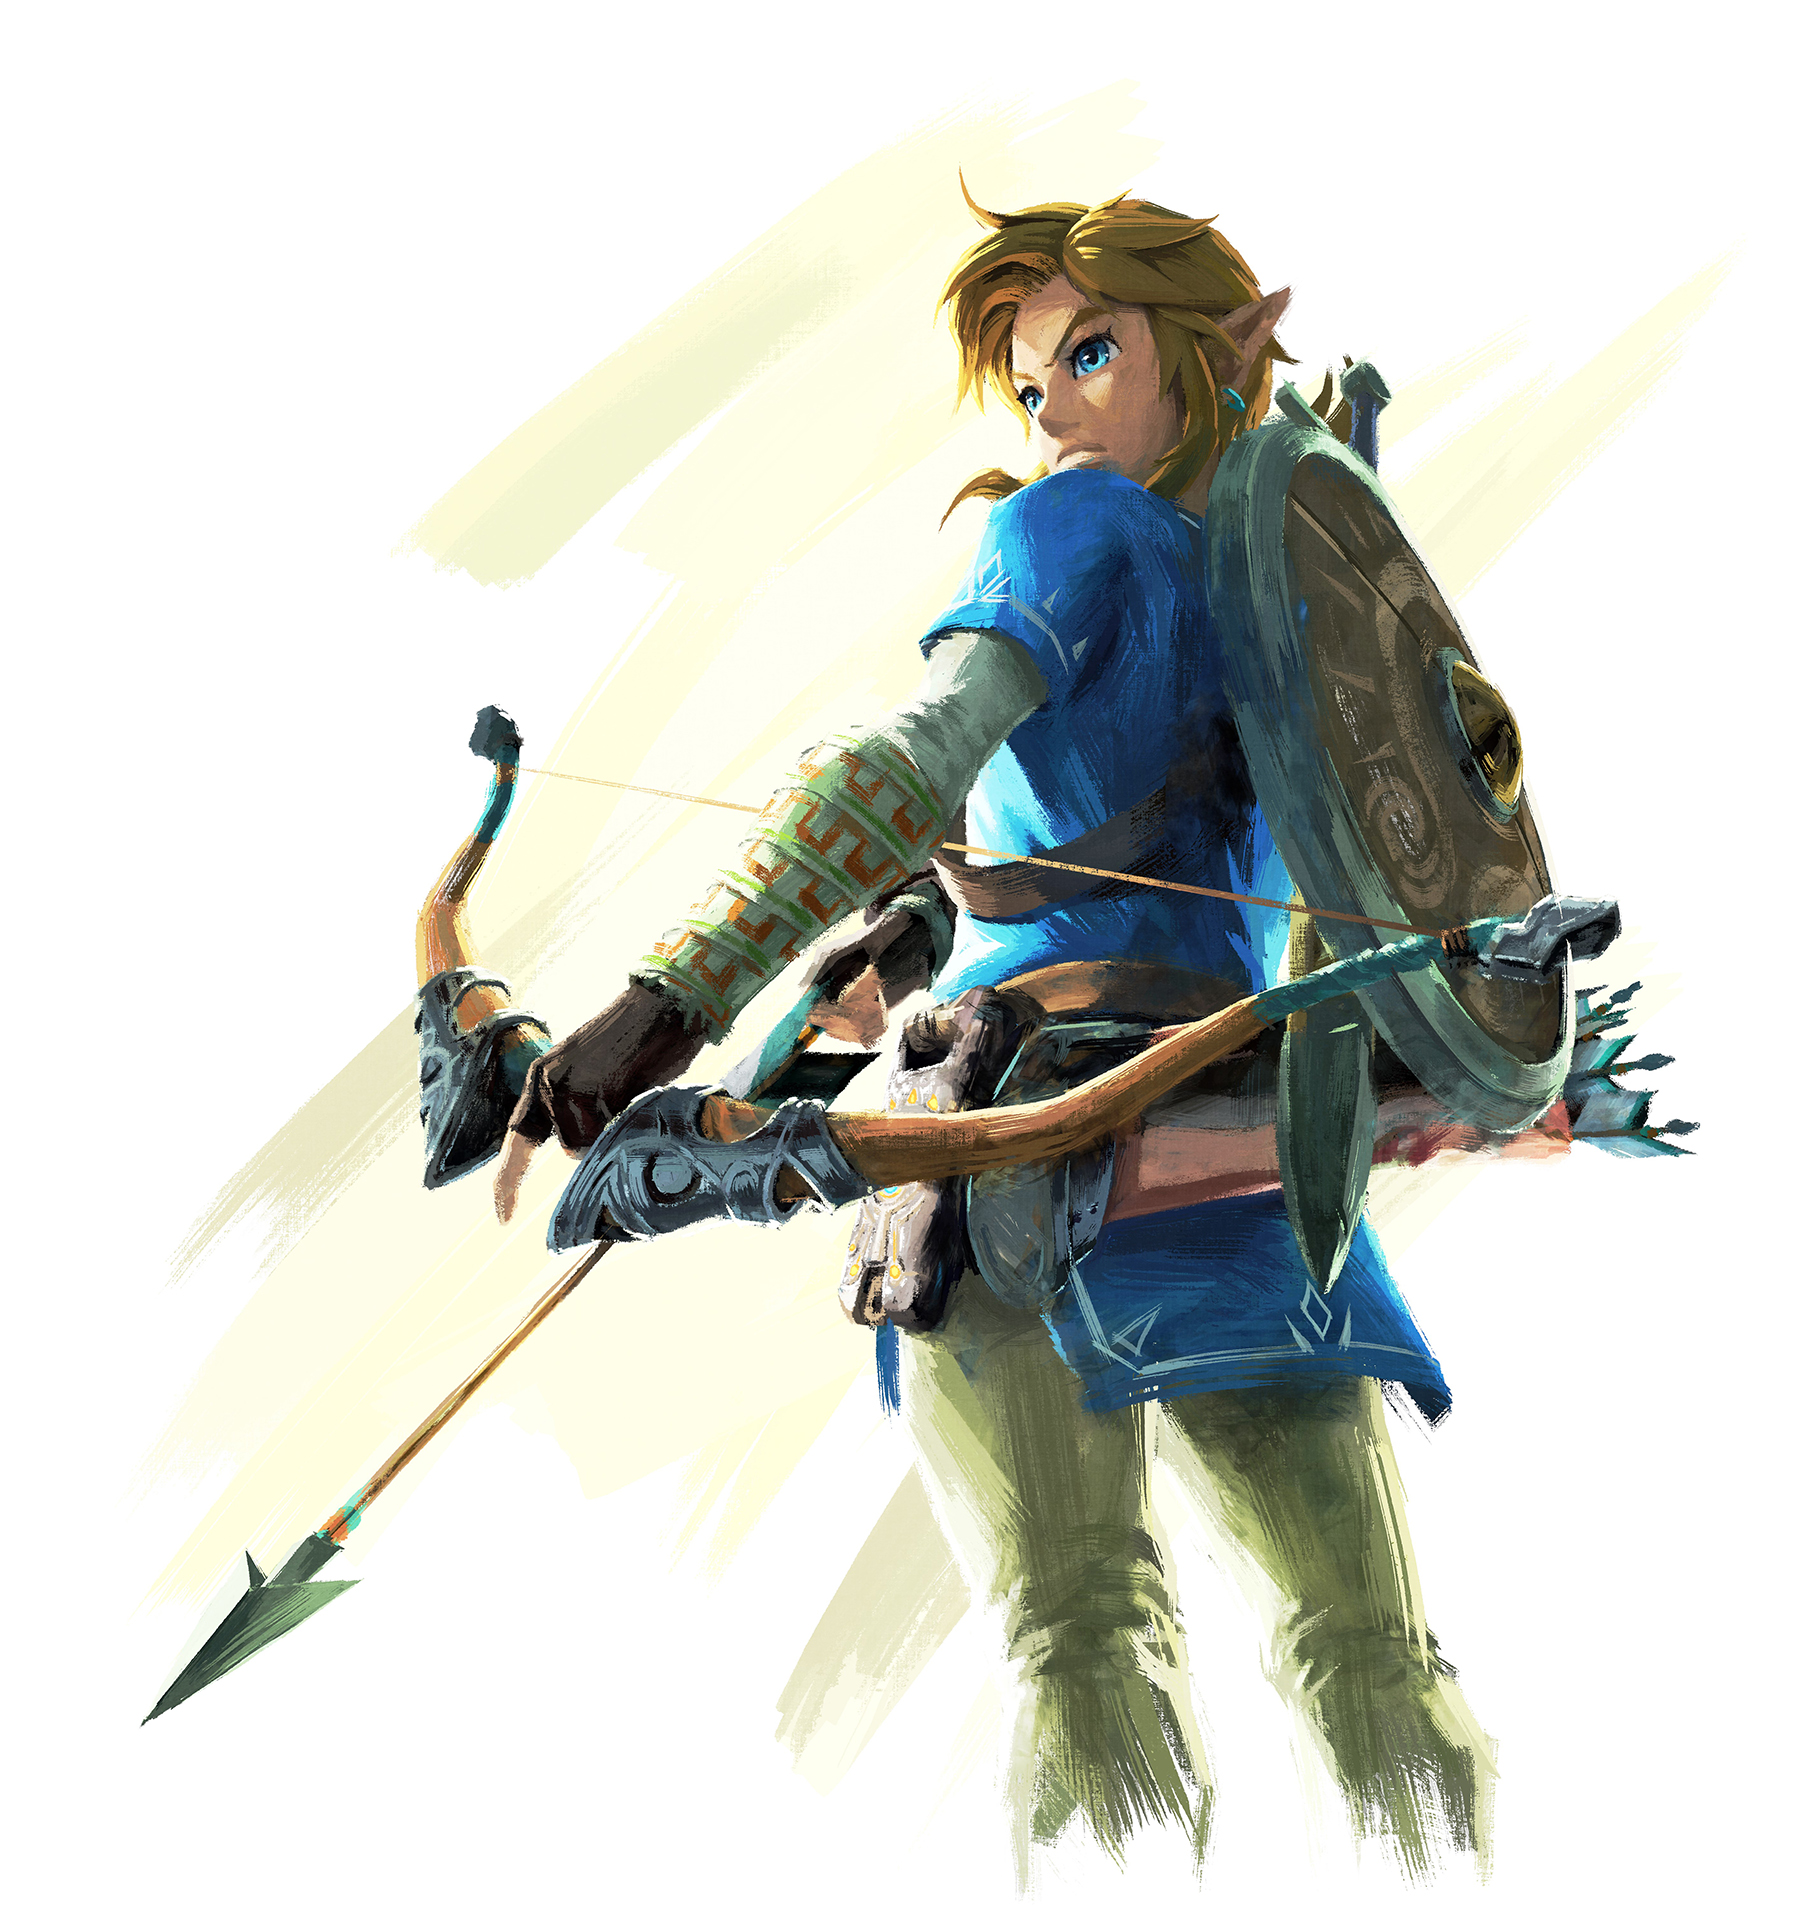 [Image: The-Legend-of-Zelda-Breath-of-the-Wild-art-3.jpg]